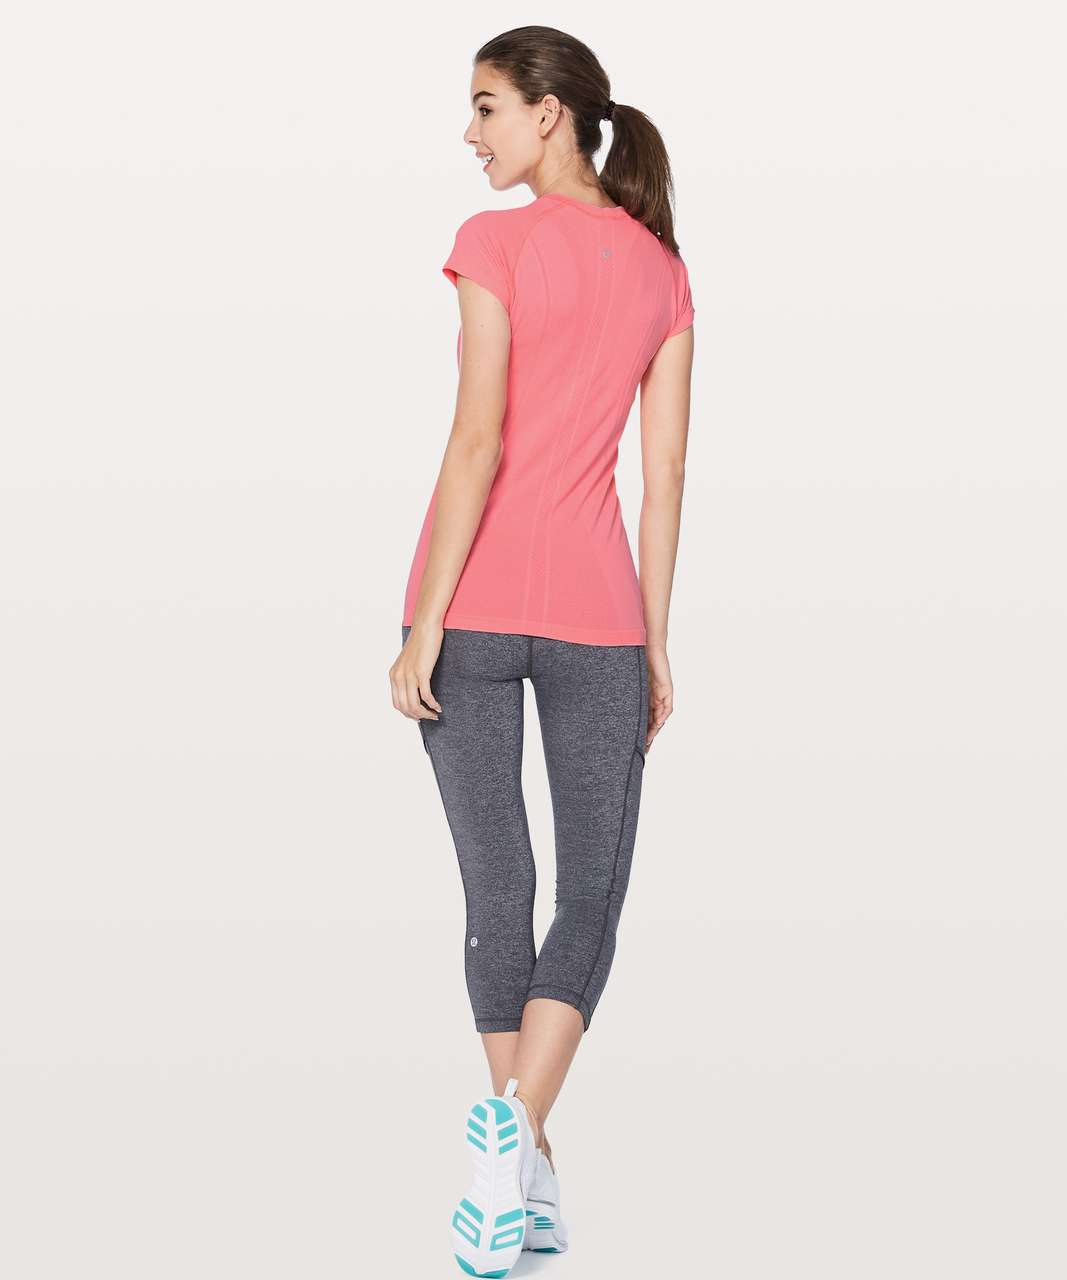 Lululemon Swiftly Tech Short Sleeve Crew - Flash Light / White